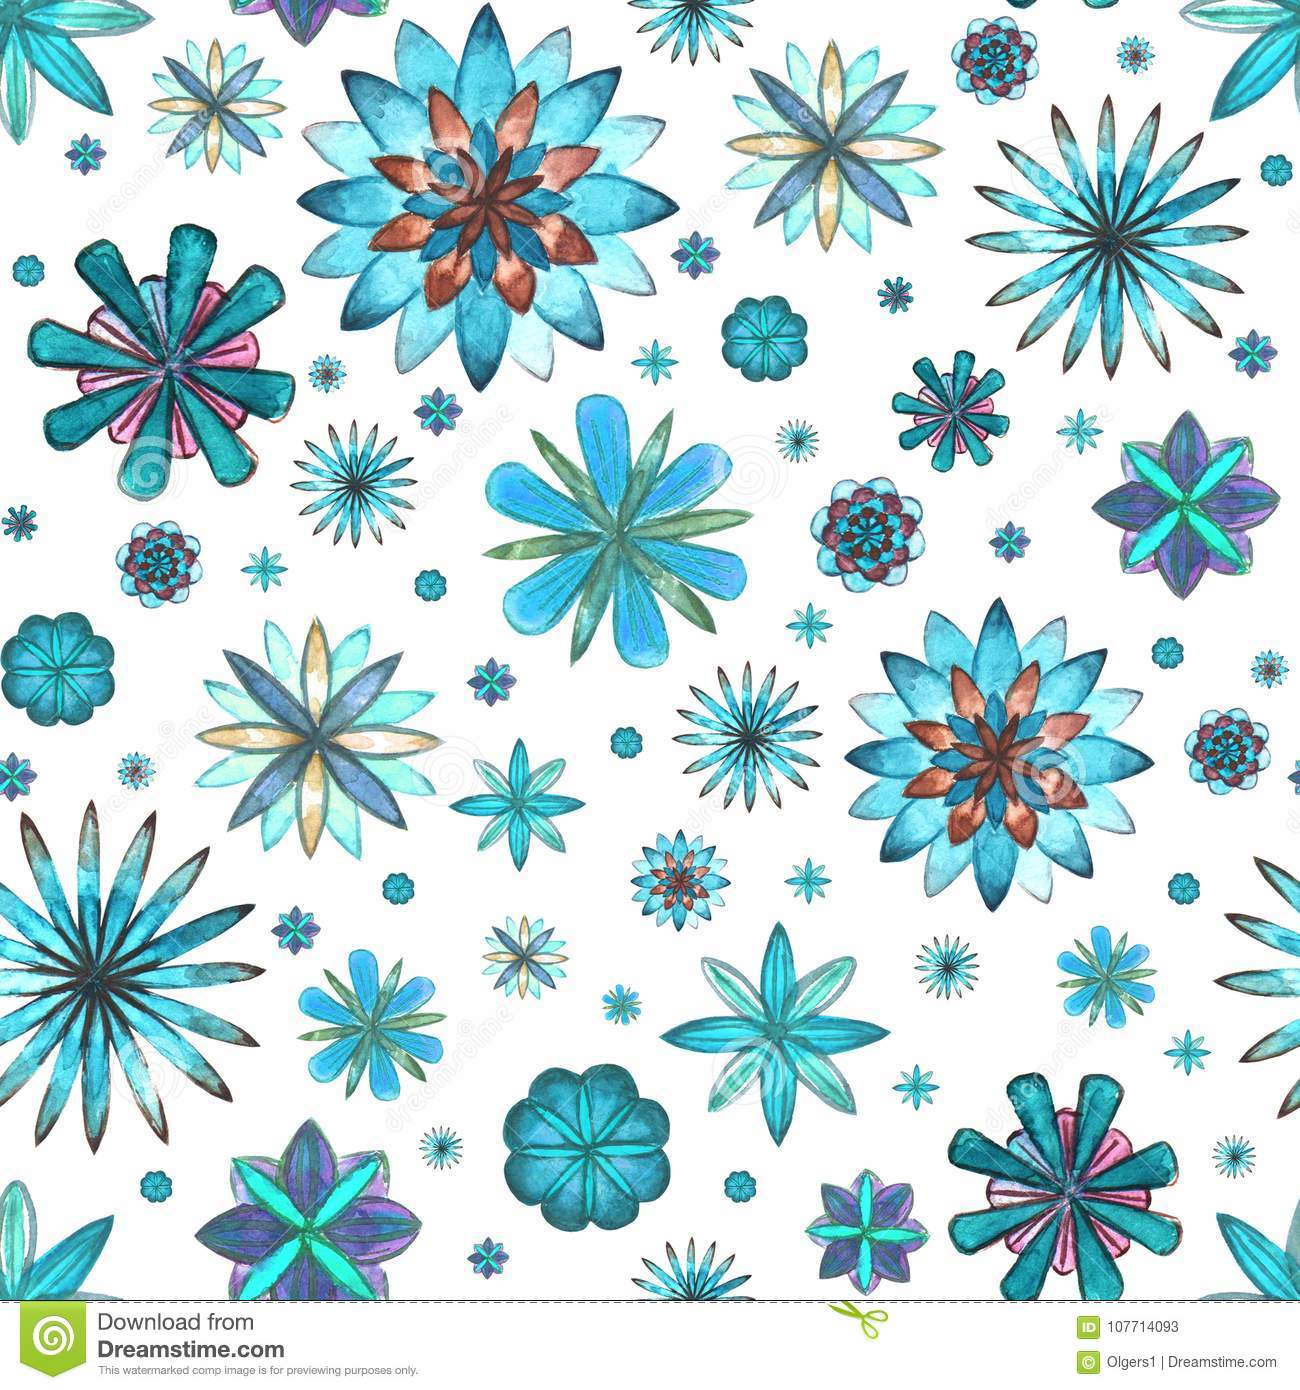 The Texture Of Teal And Turquoise: Floral Seamless Ethnic Boho Pattern Stock Illustration